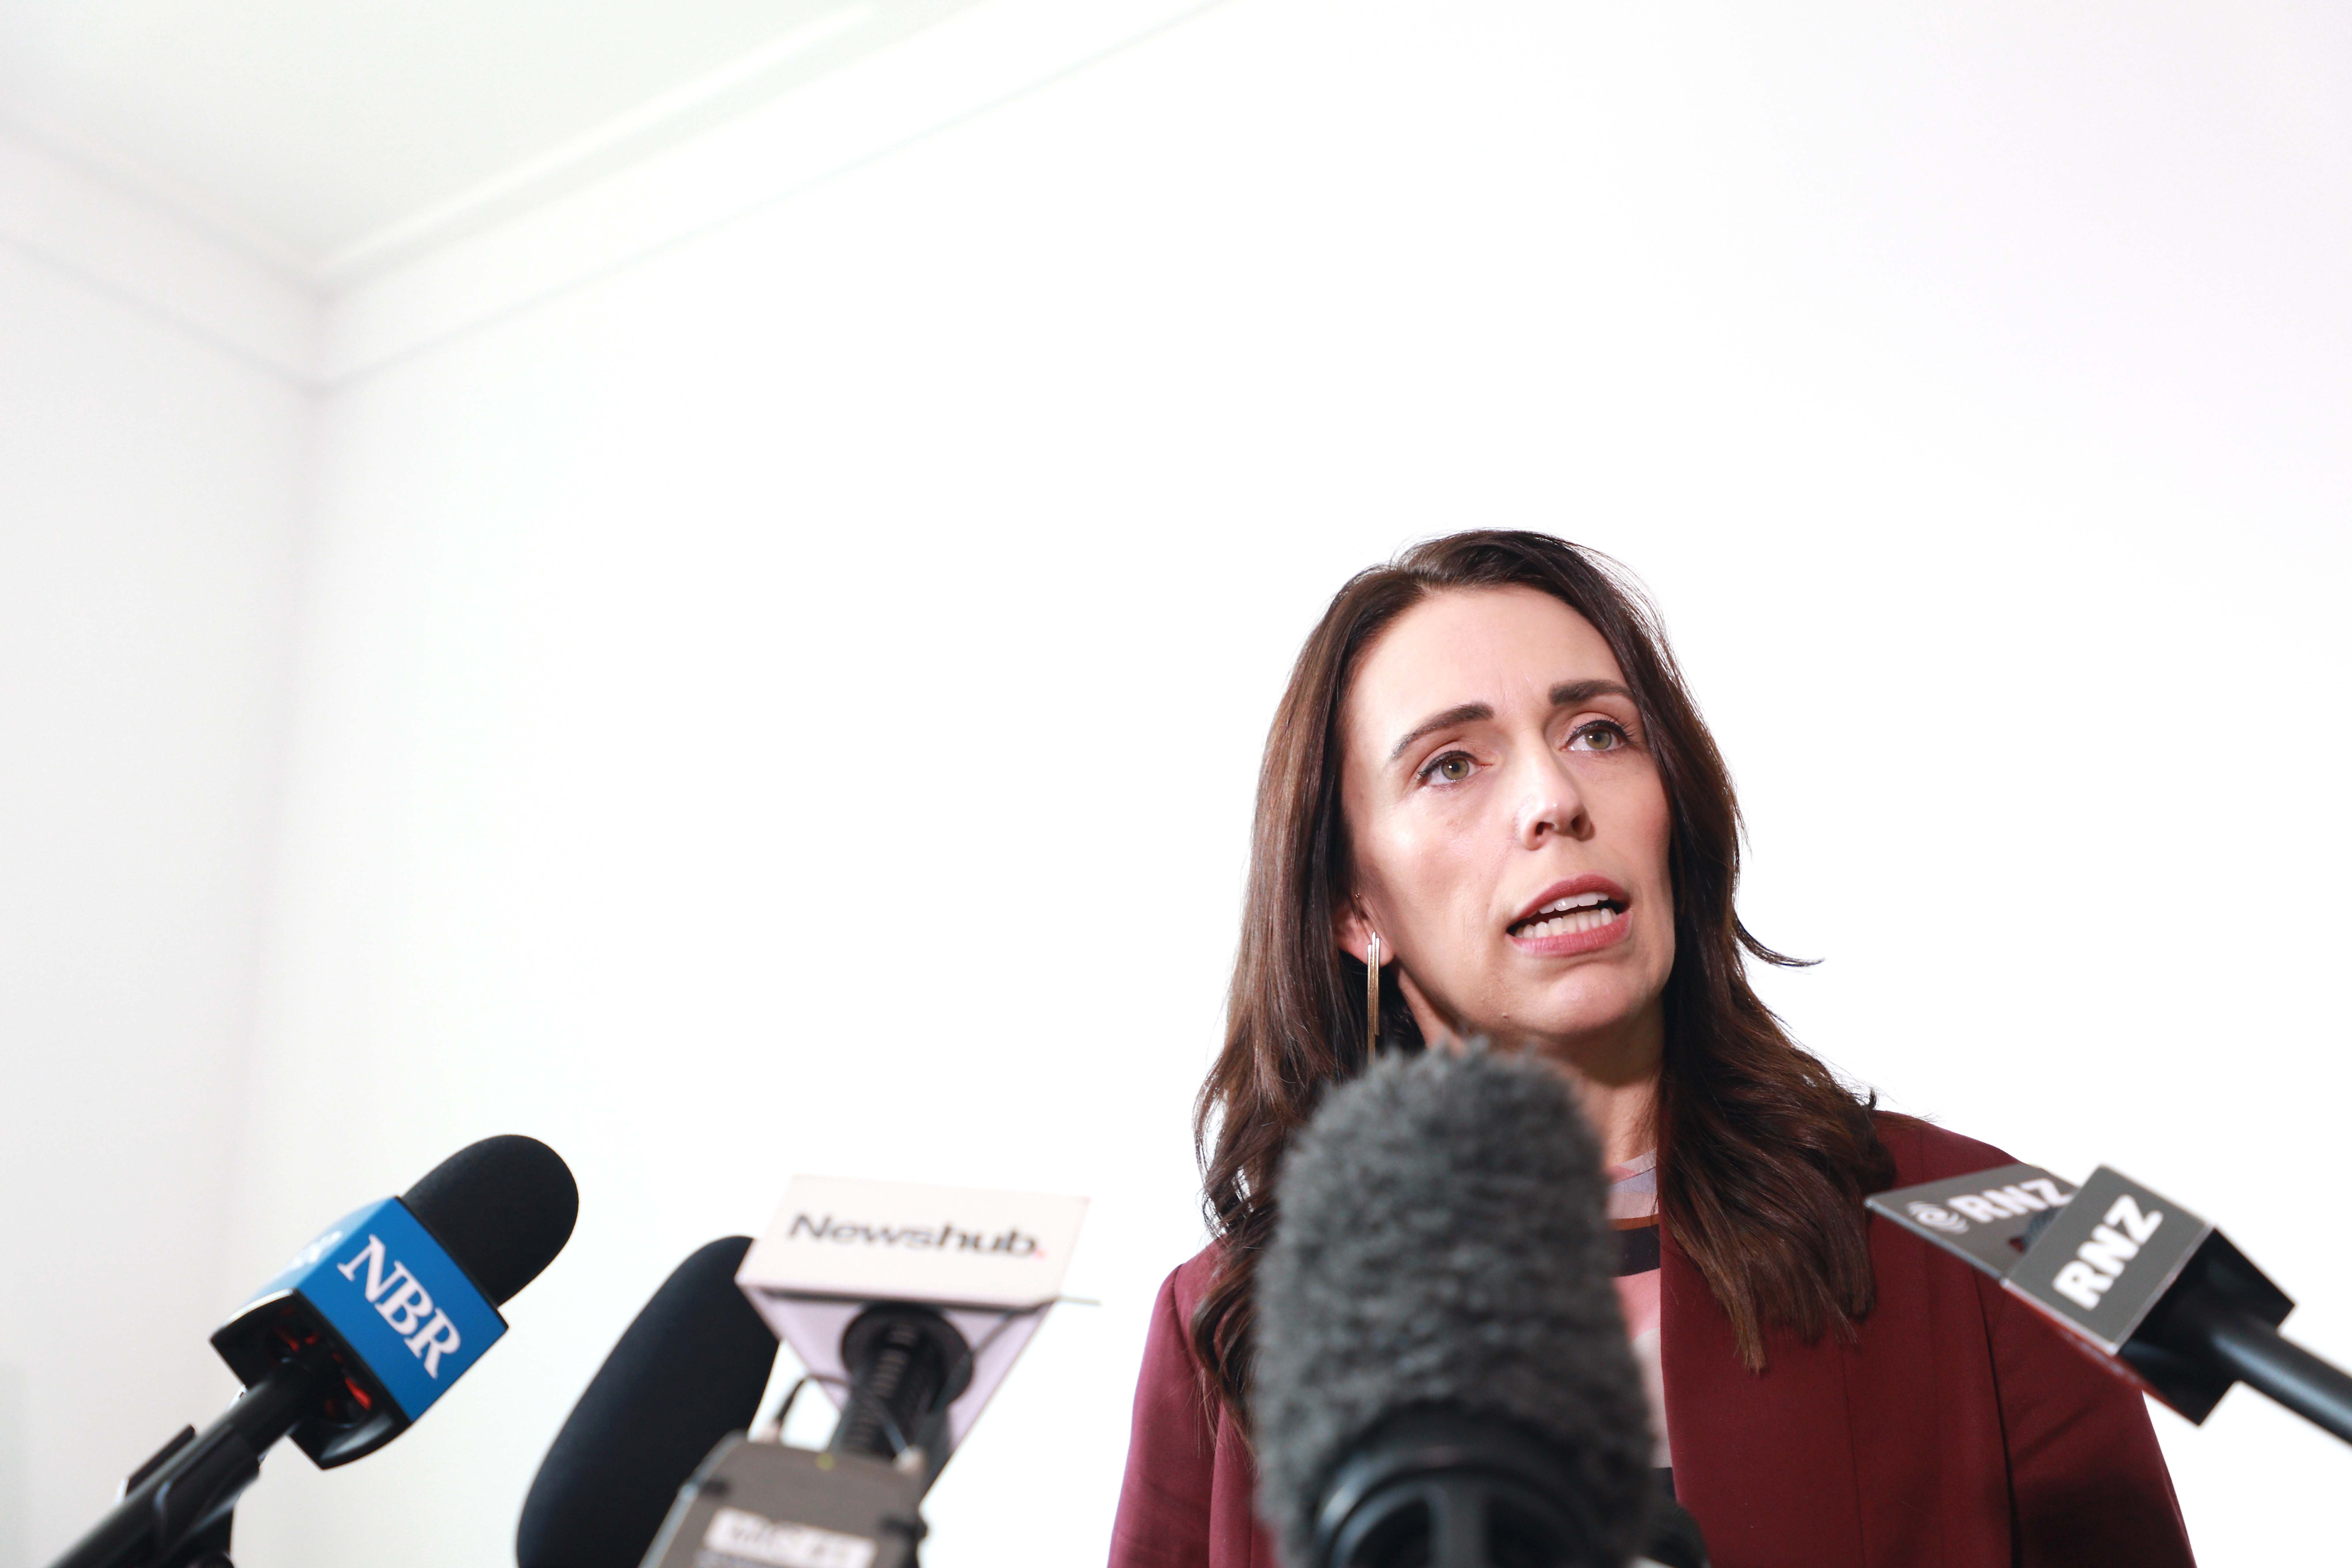 New Zealand Prime Minister Jacinda Ardern speaks to the media at a media conference at Mt Albert Electorate Office on April 24, 2019 in Auckland, New Zealand. New Zealand and France have announced that the two countries will lead global efforts to try to end the use of social media to organize and promote terrorism.